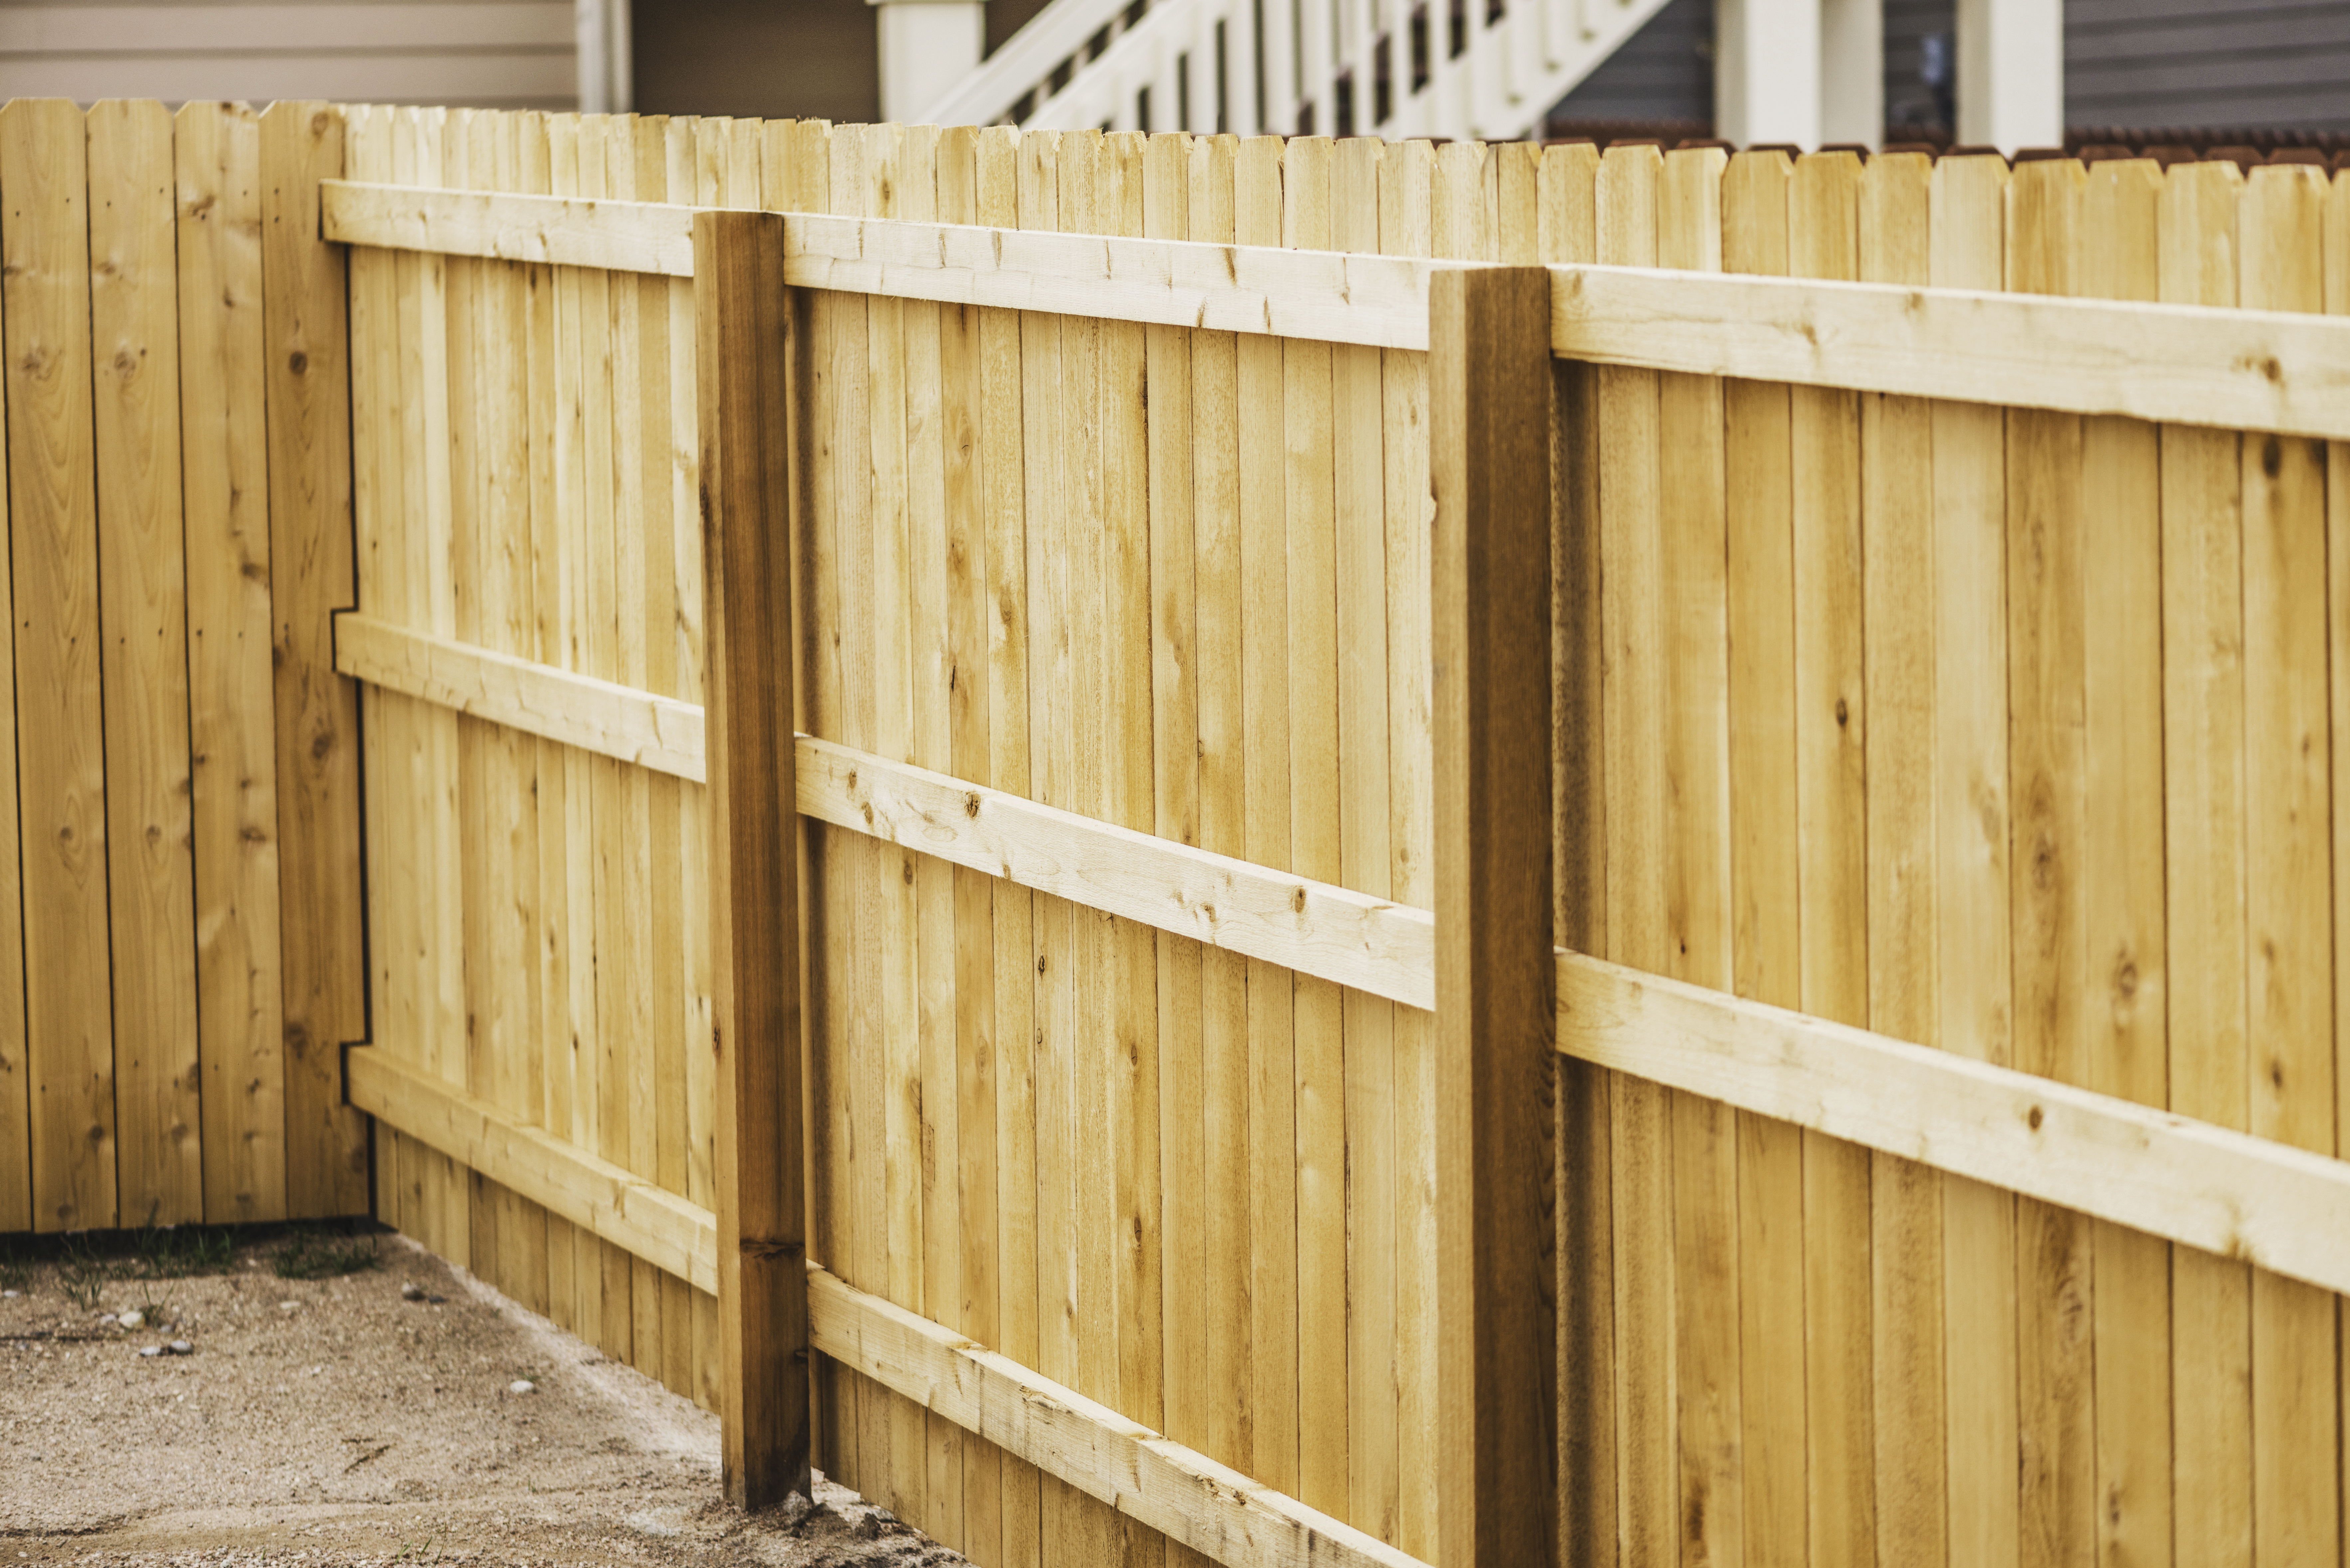 How To Protect Wooden Fence Posts From Rotting Home Guides Sf Gate